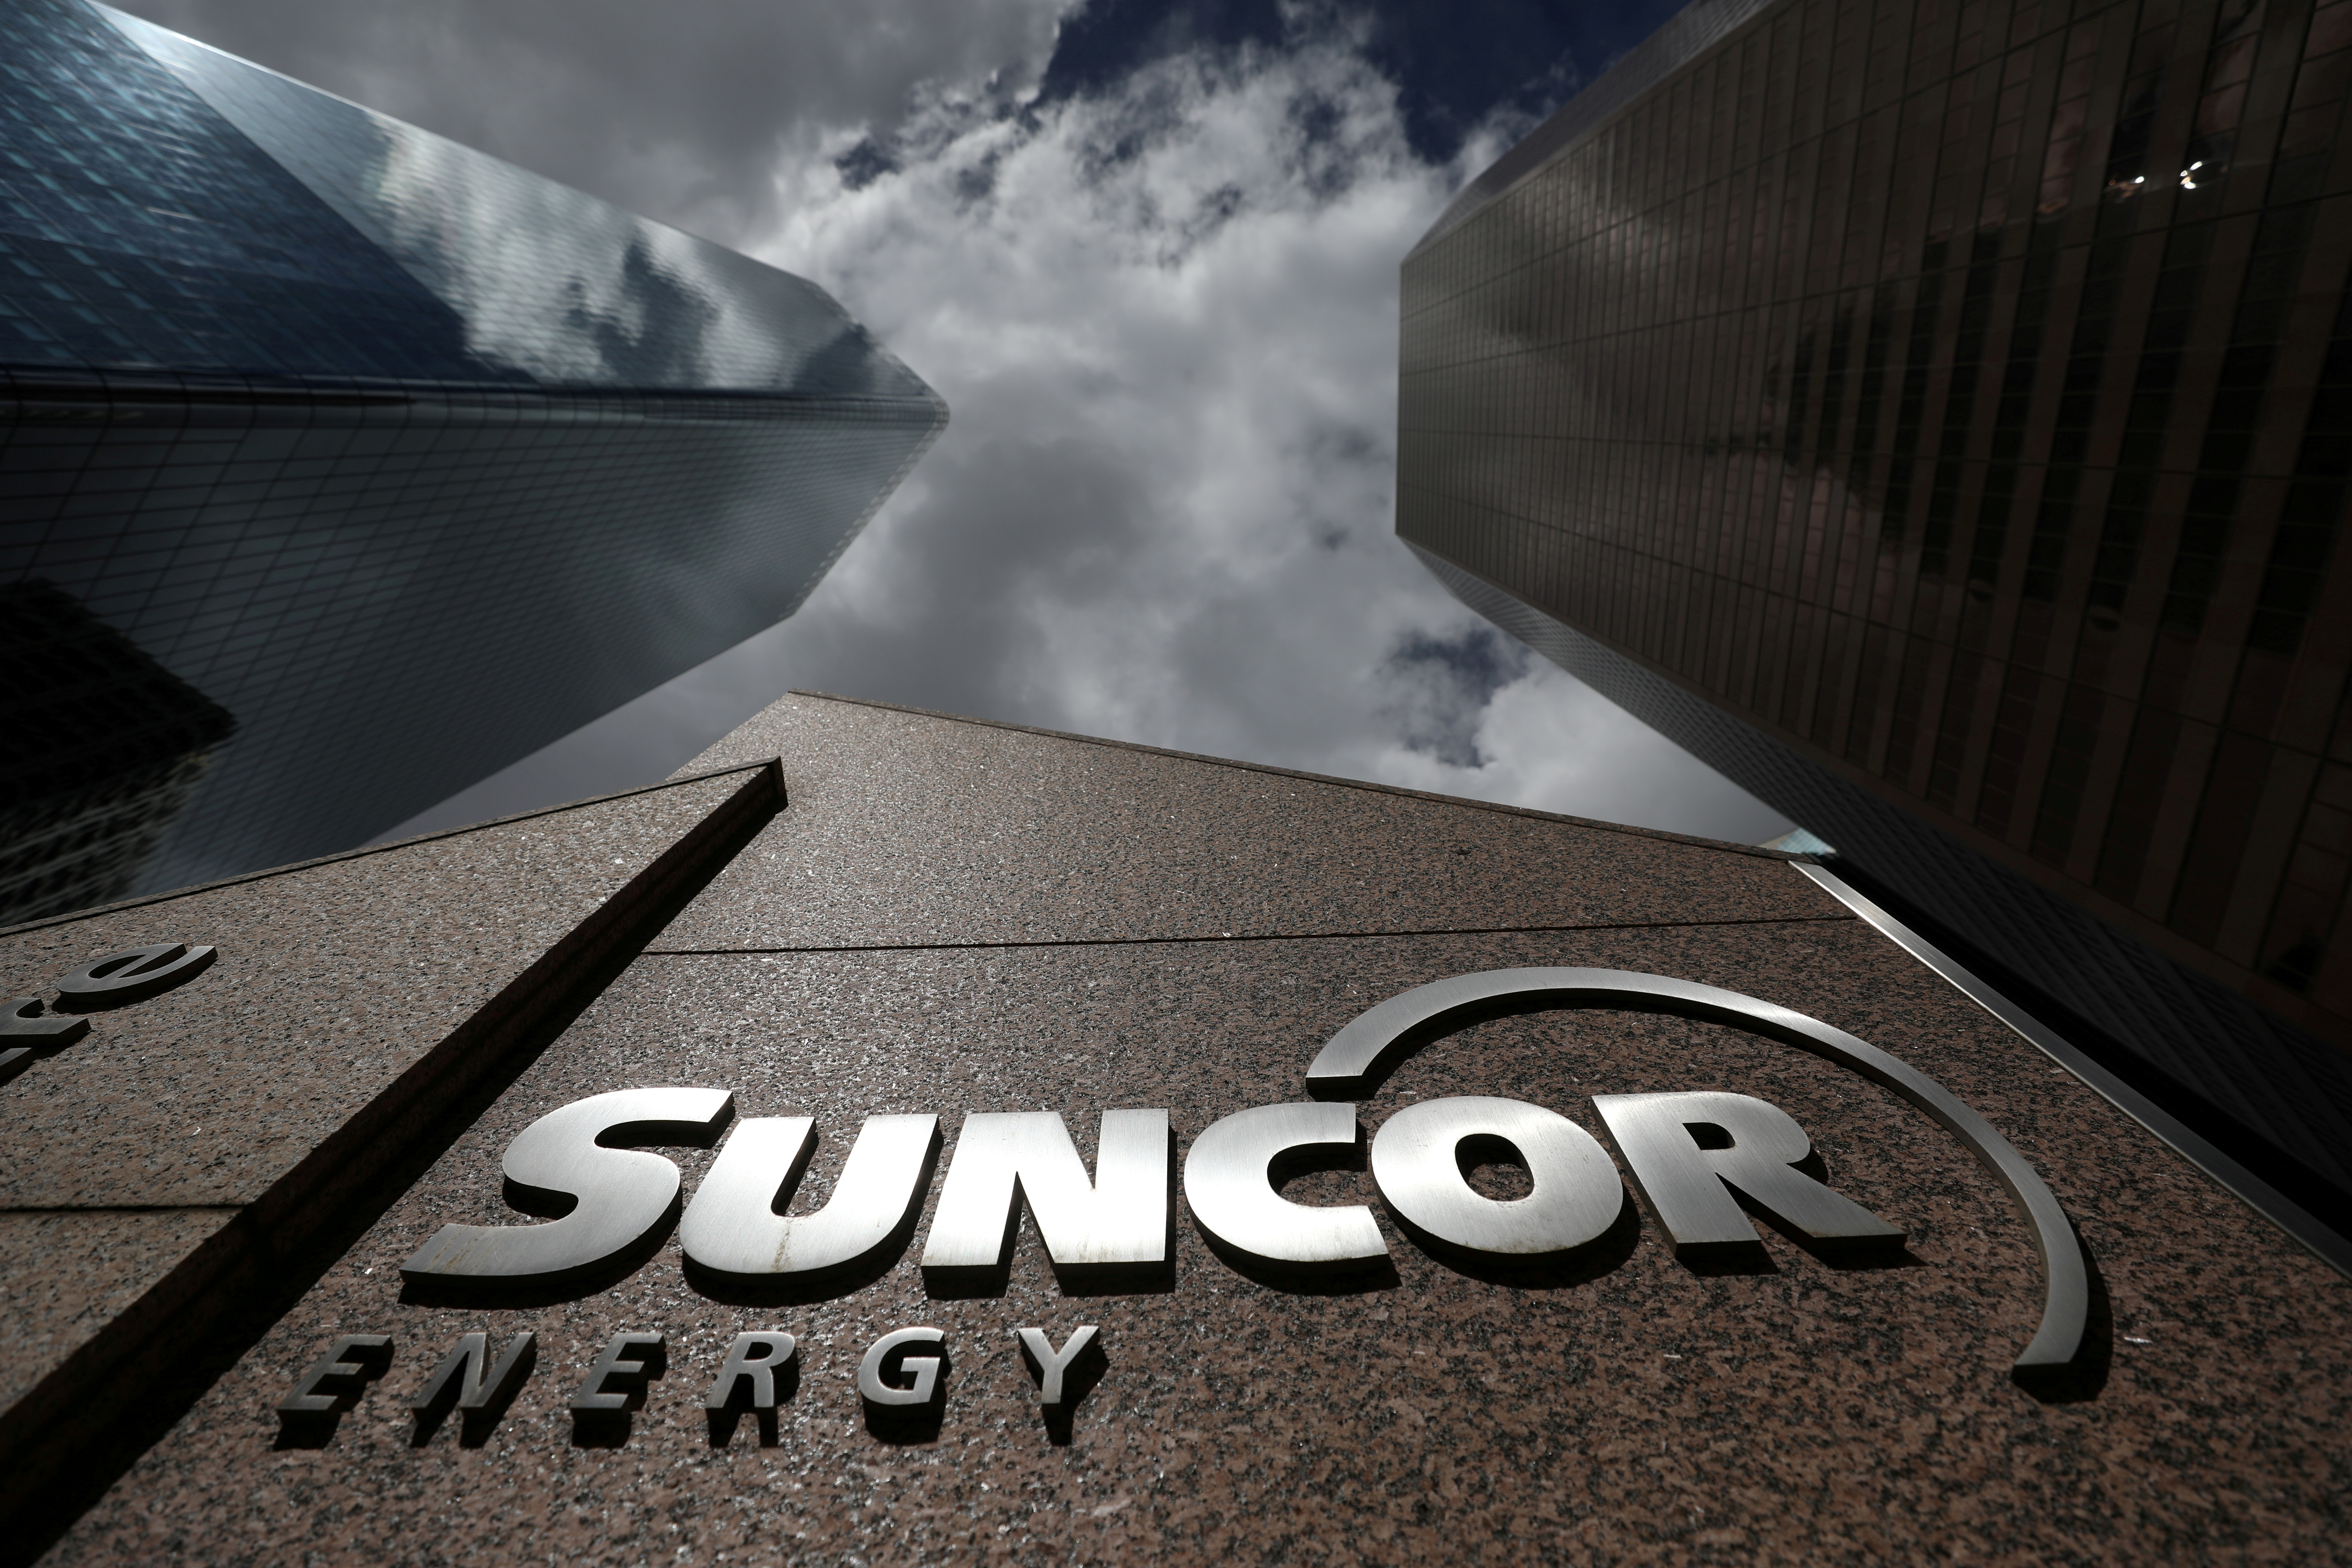 FILE PHOTO: The Suncor Energy logo is seen at their head office in Calgary, Alberta, Canada, April 17, 2019. REUTERS/Chris Wattie